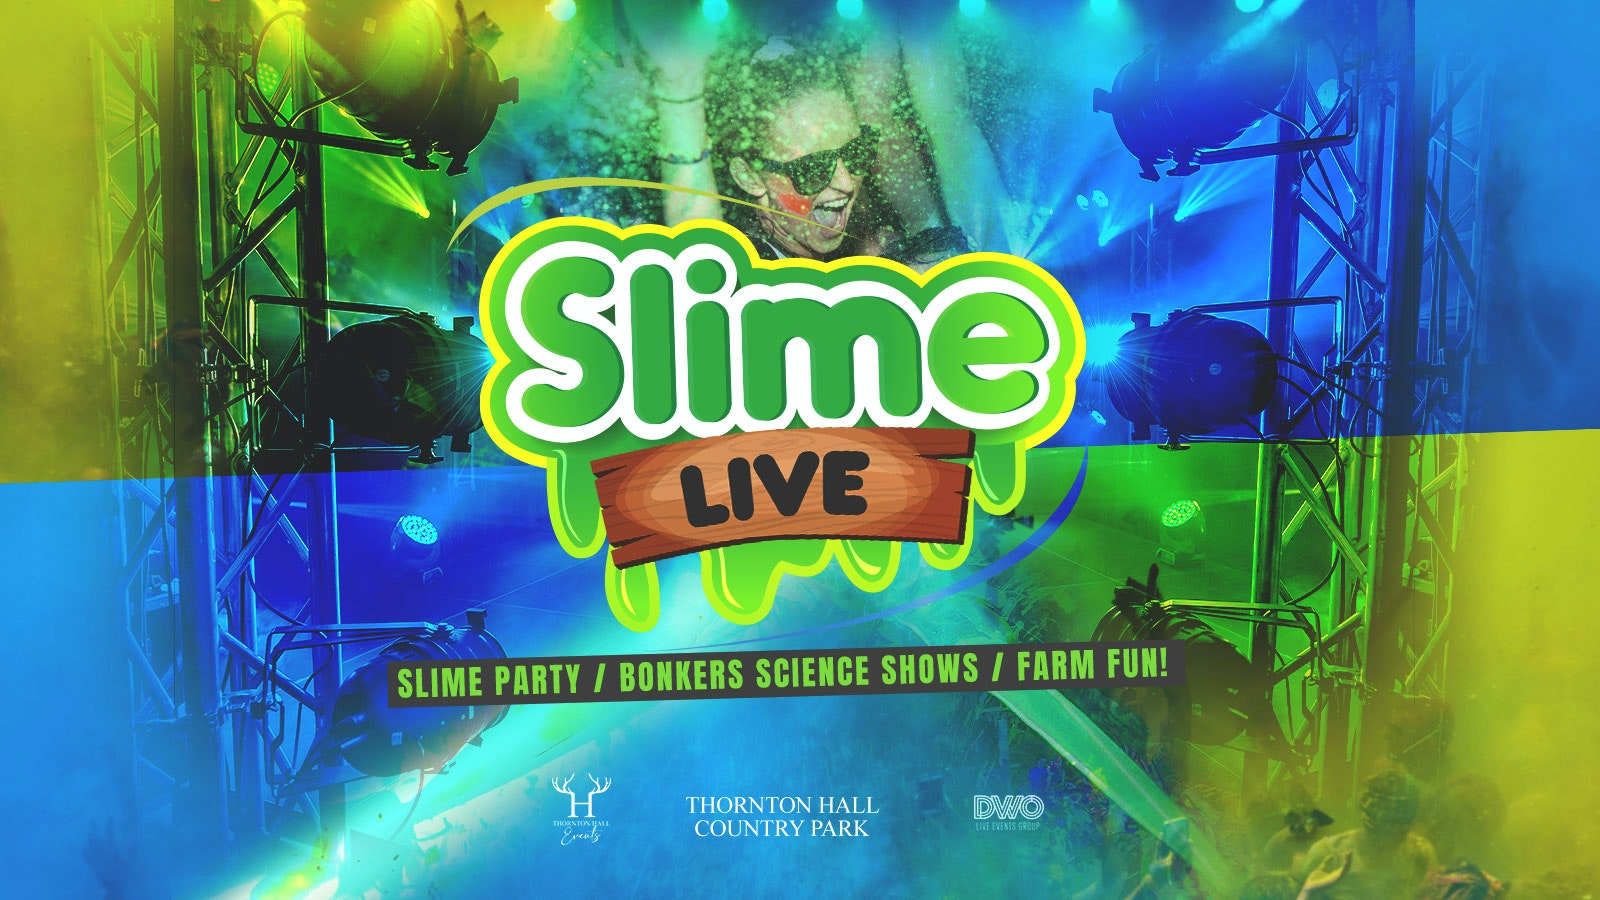 Slime Live (including Farm Park Entry) – Tuesday 17th August – All Day Ticket